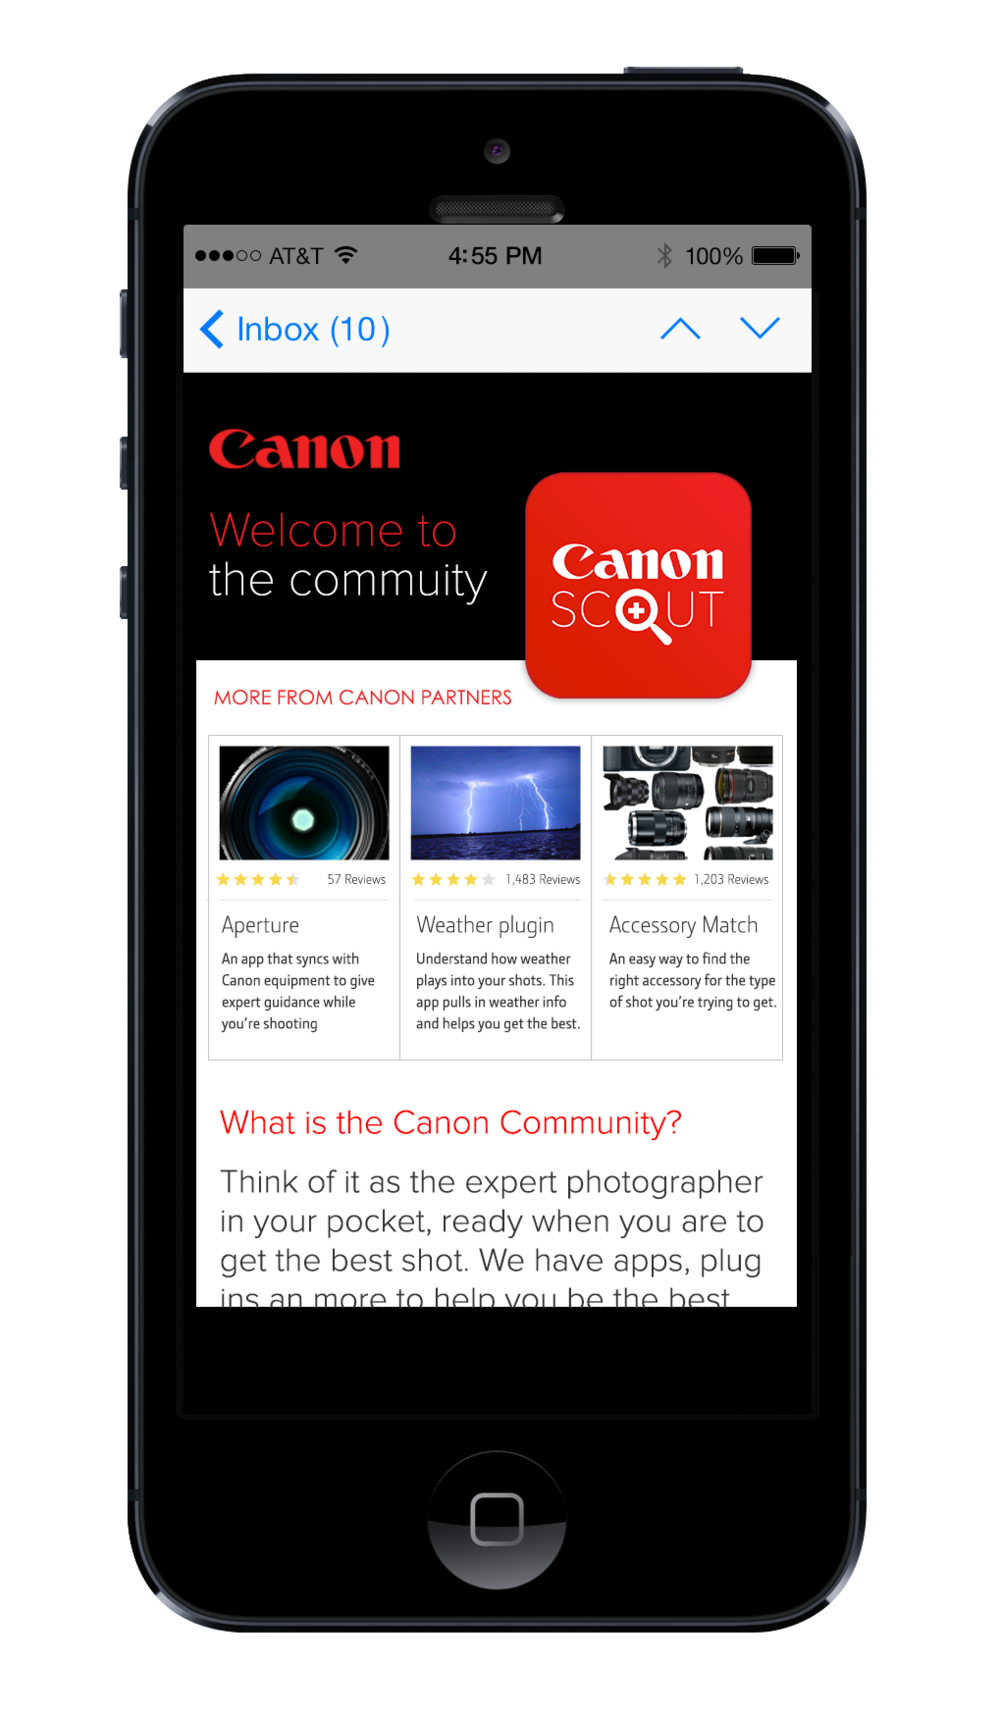 Canon API: Opening the community to other apps that support the Canon customer